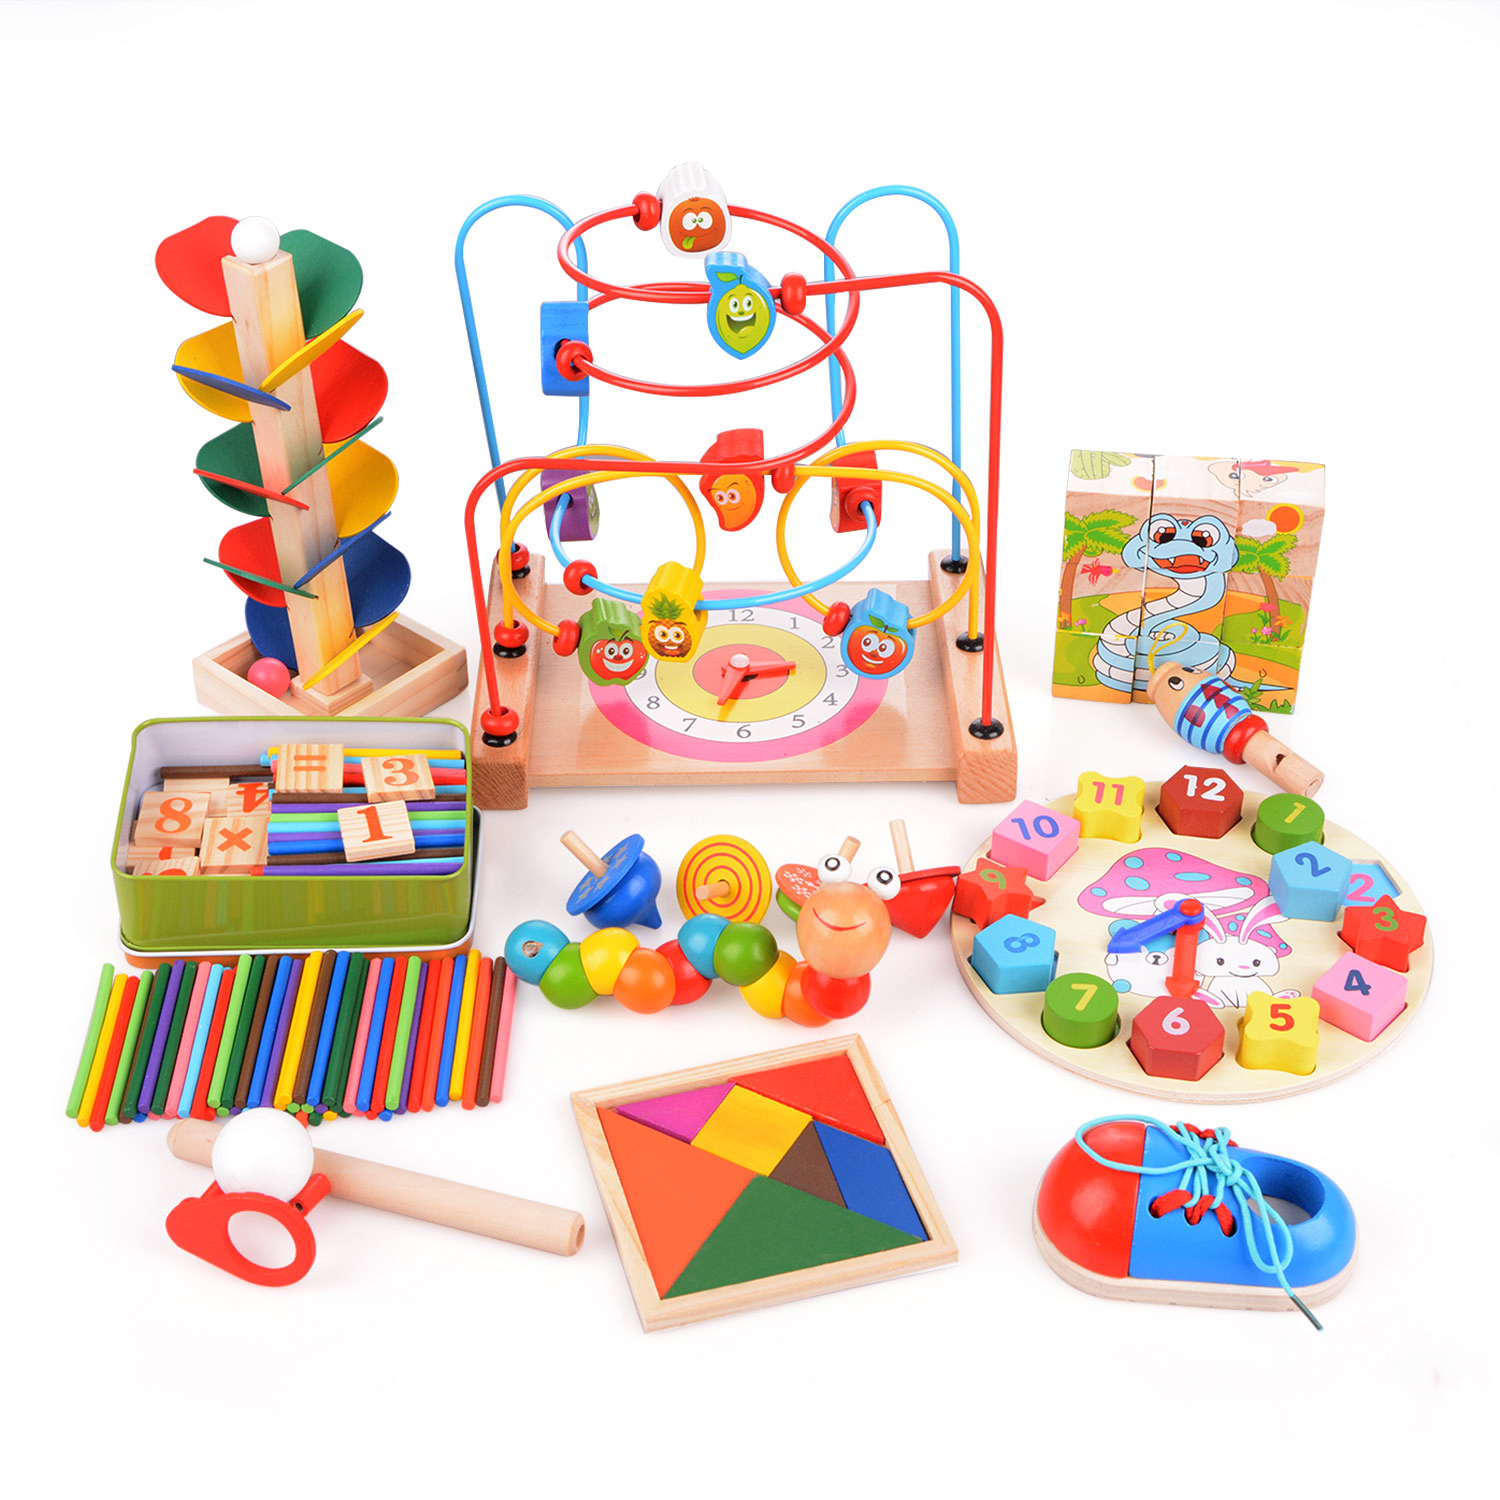 14pc/set New Wooden Education Toys for 3 years Baby ...